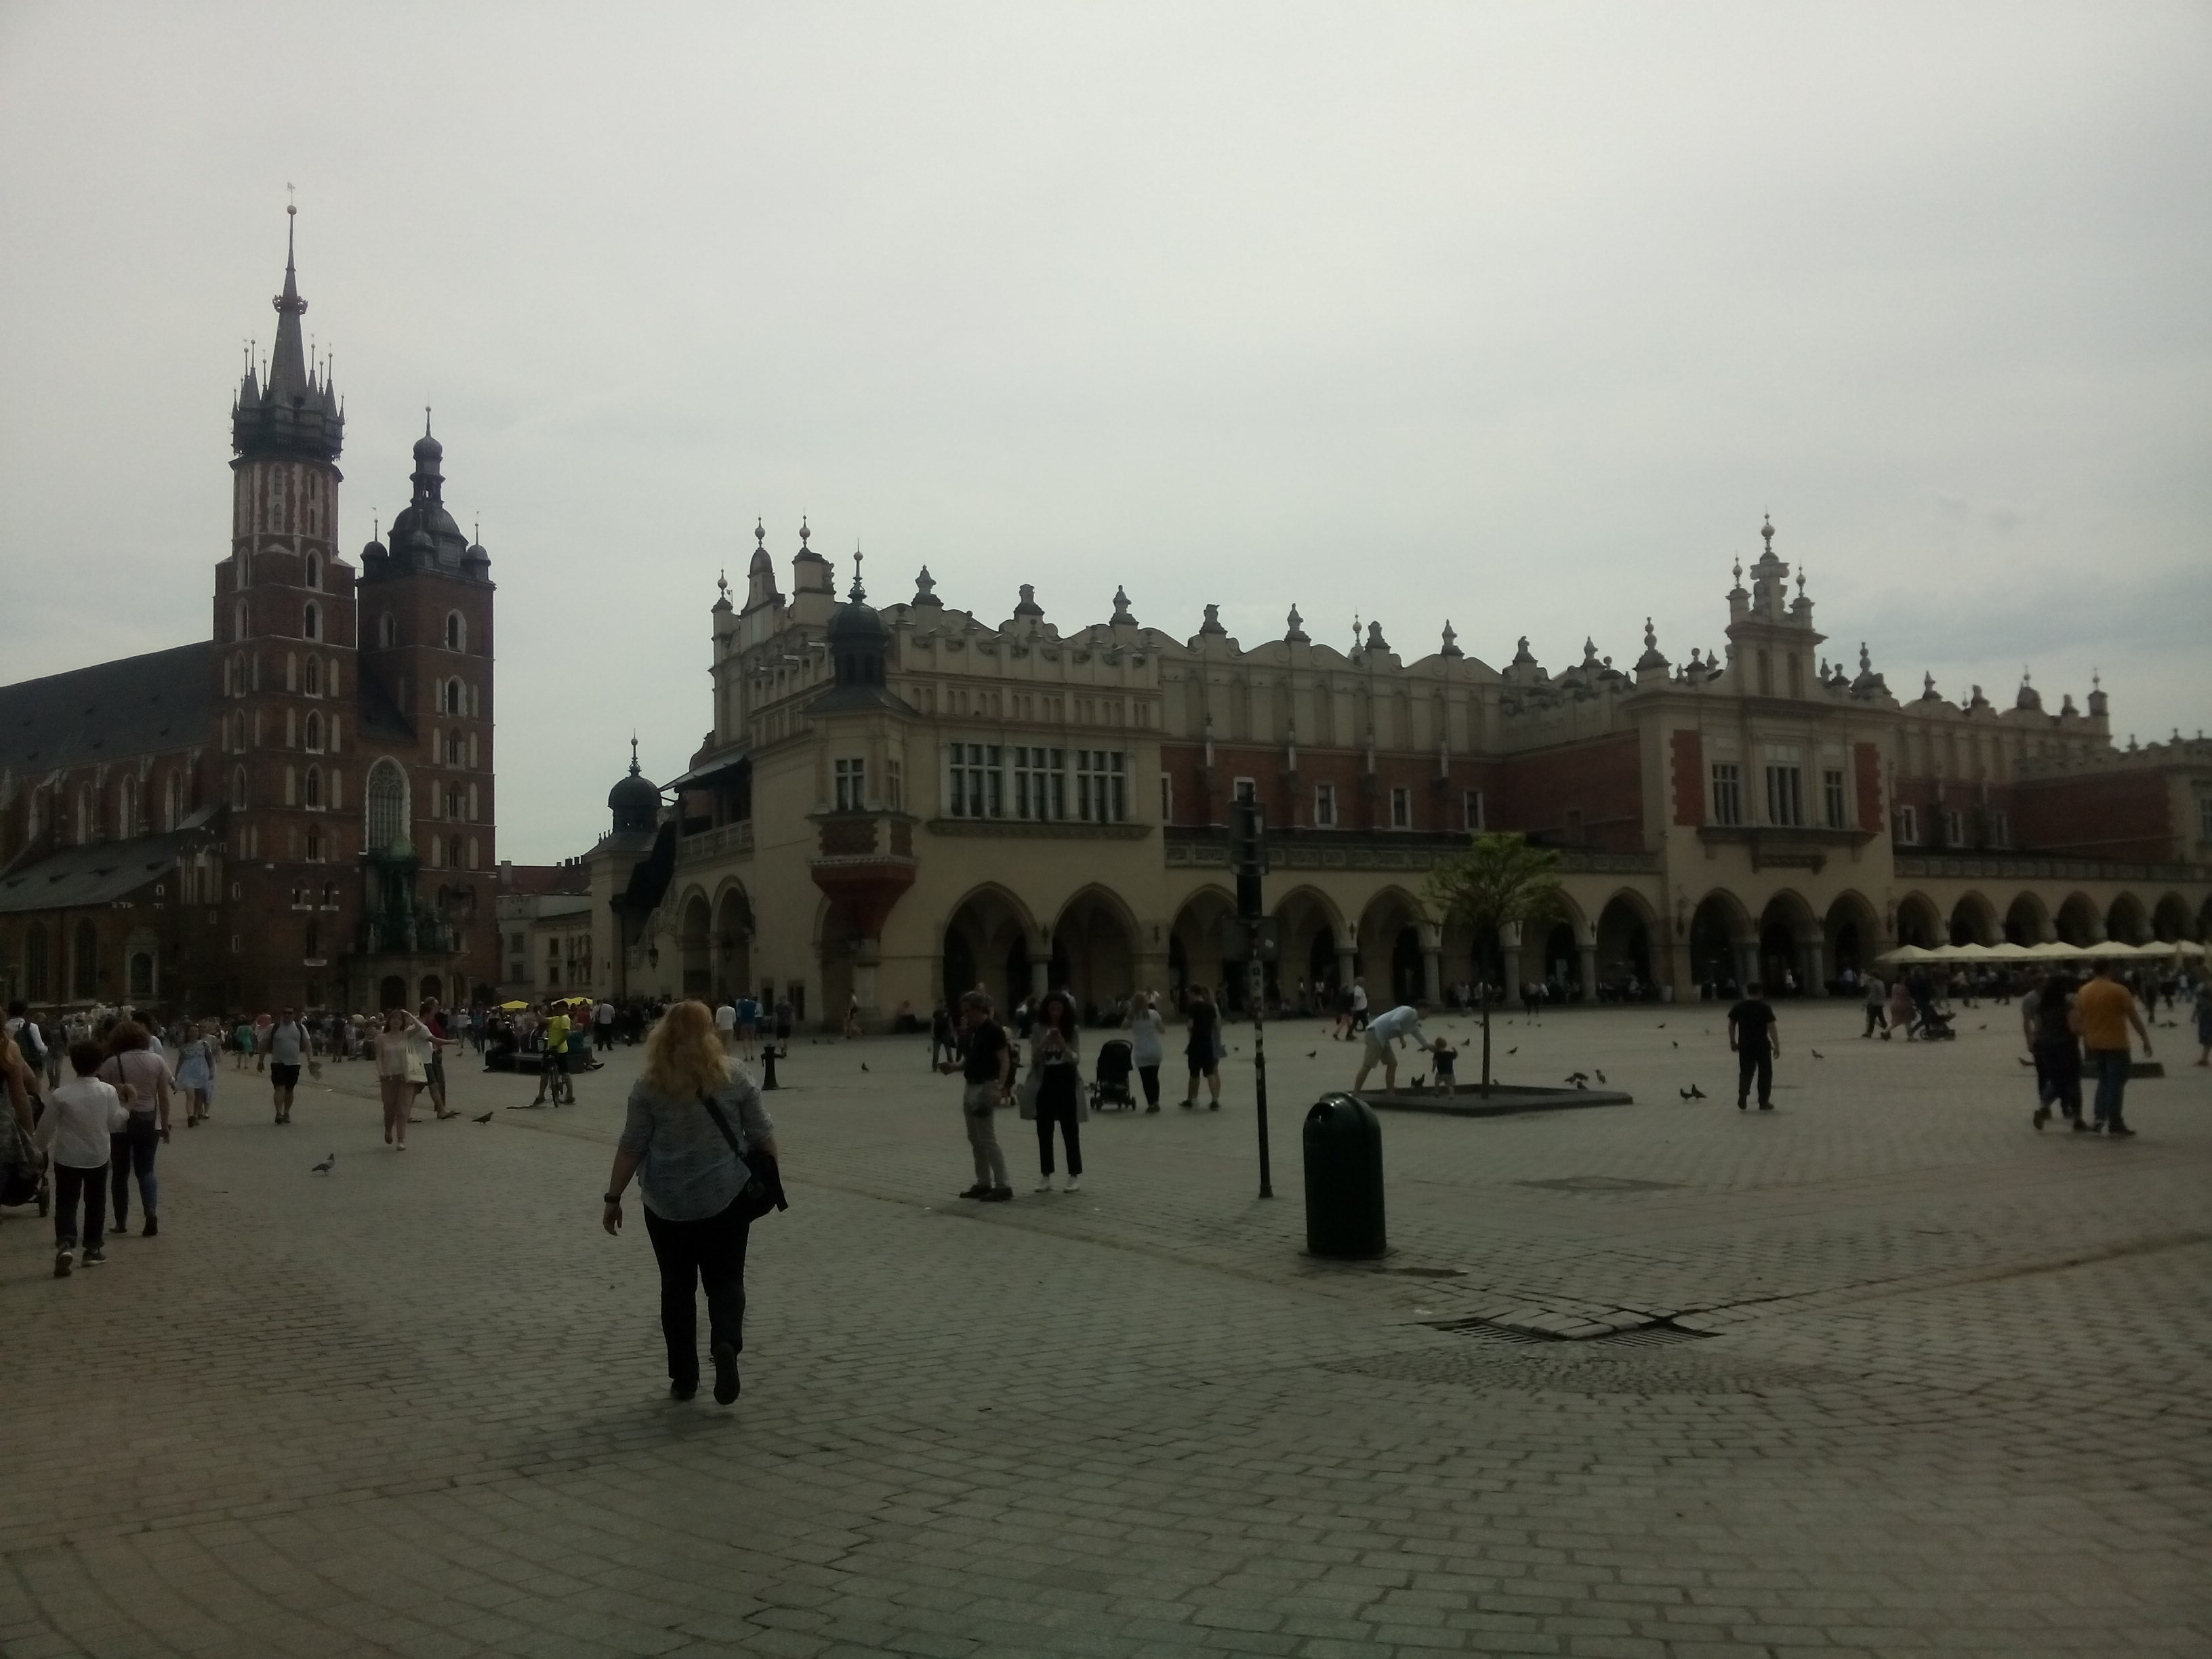 A cobbled square with walking people and fancy buildings